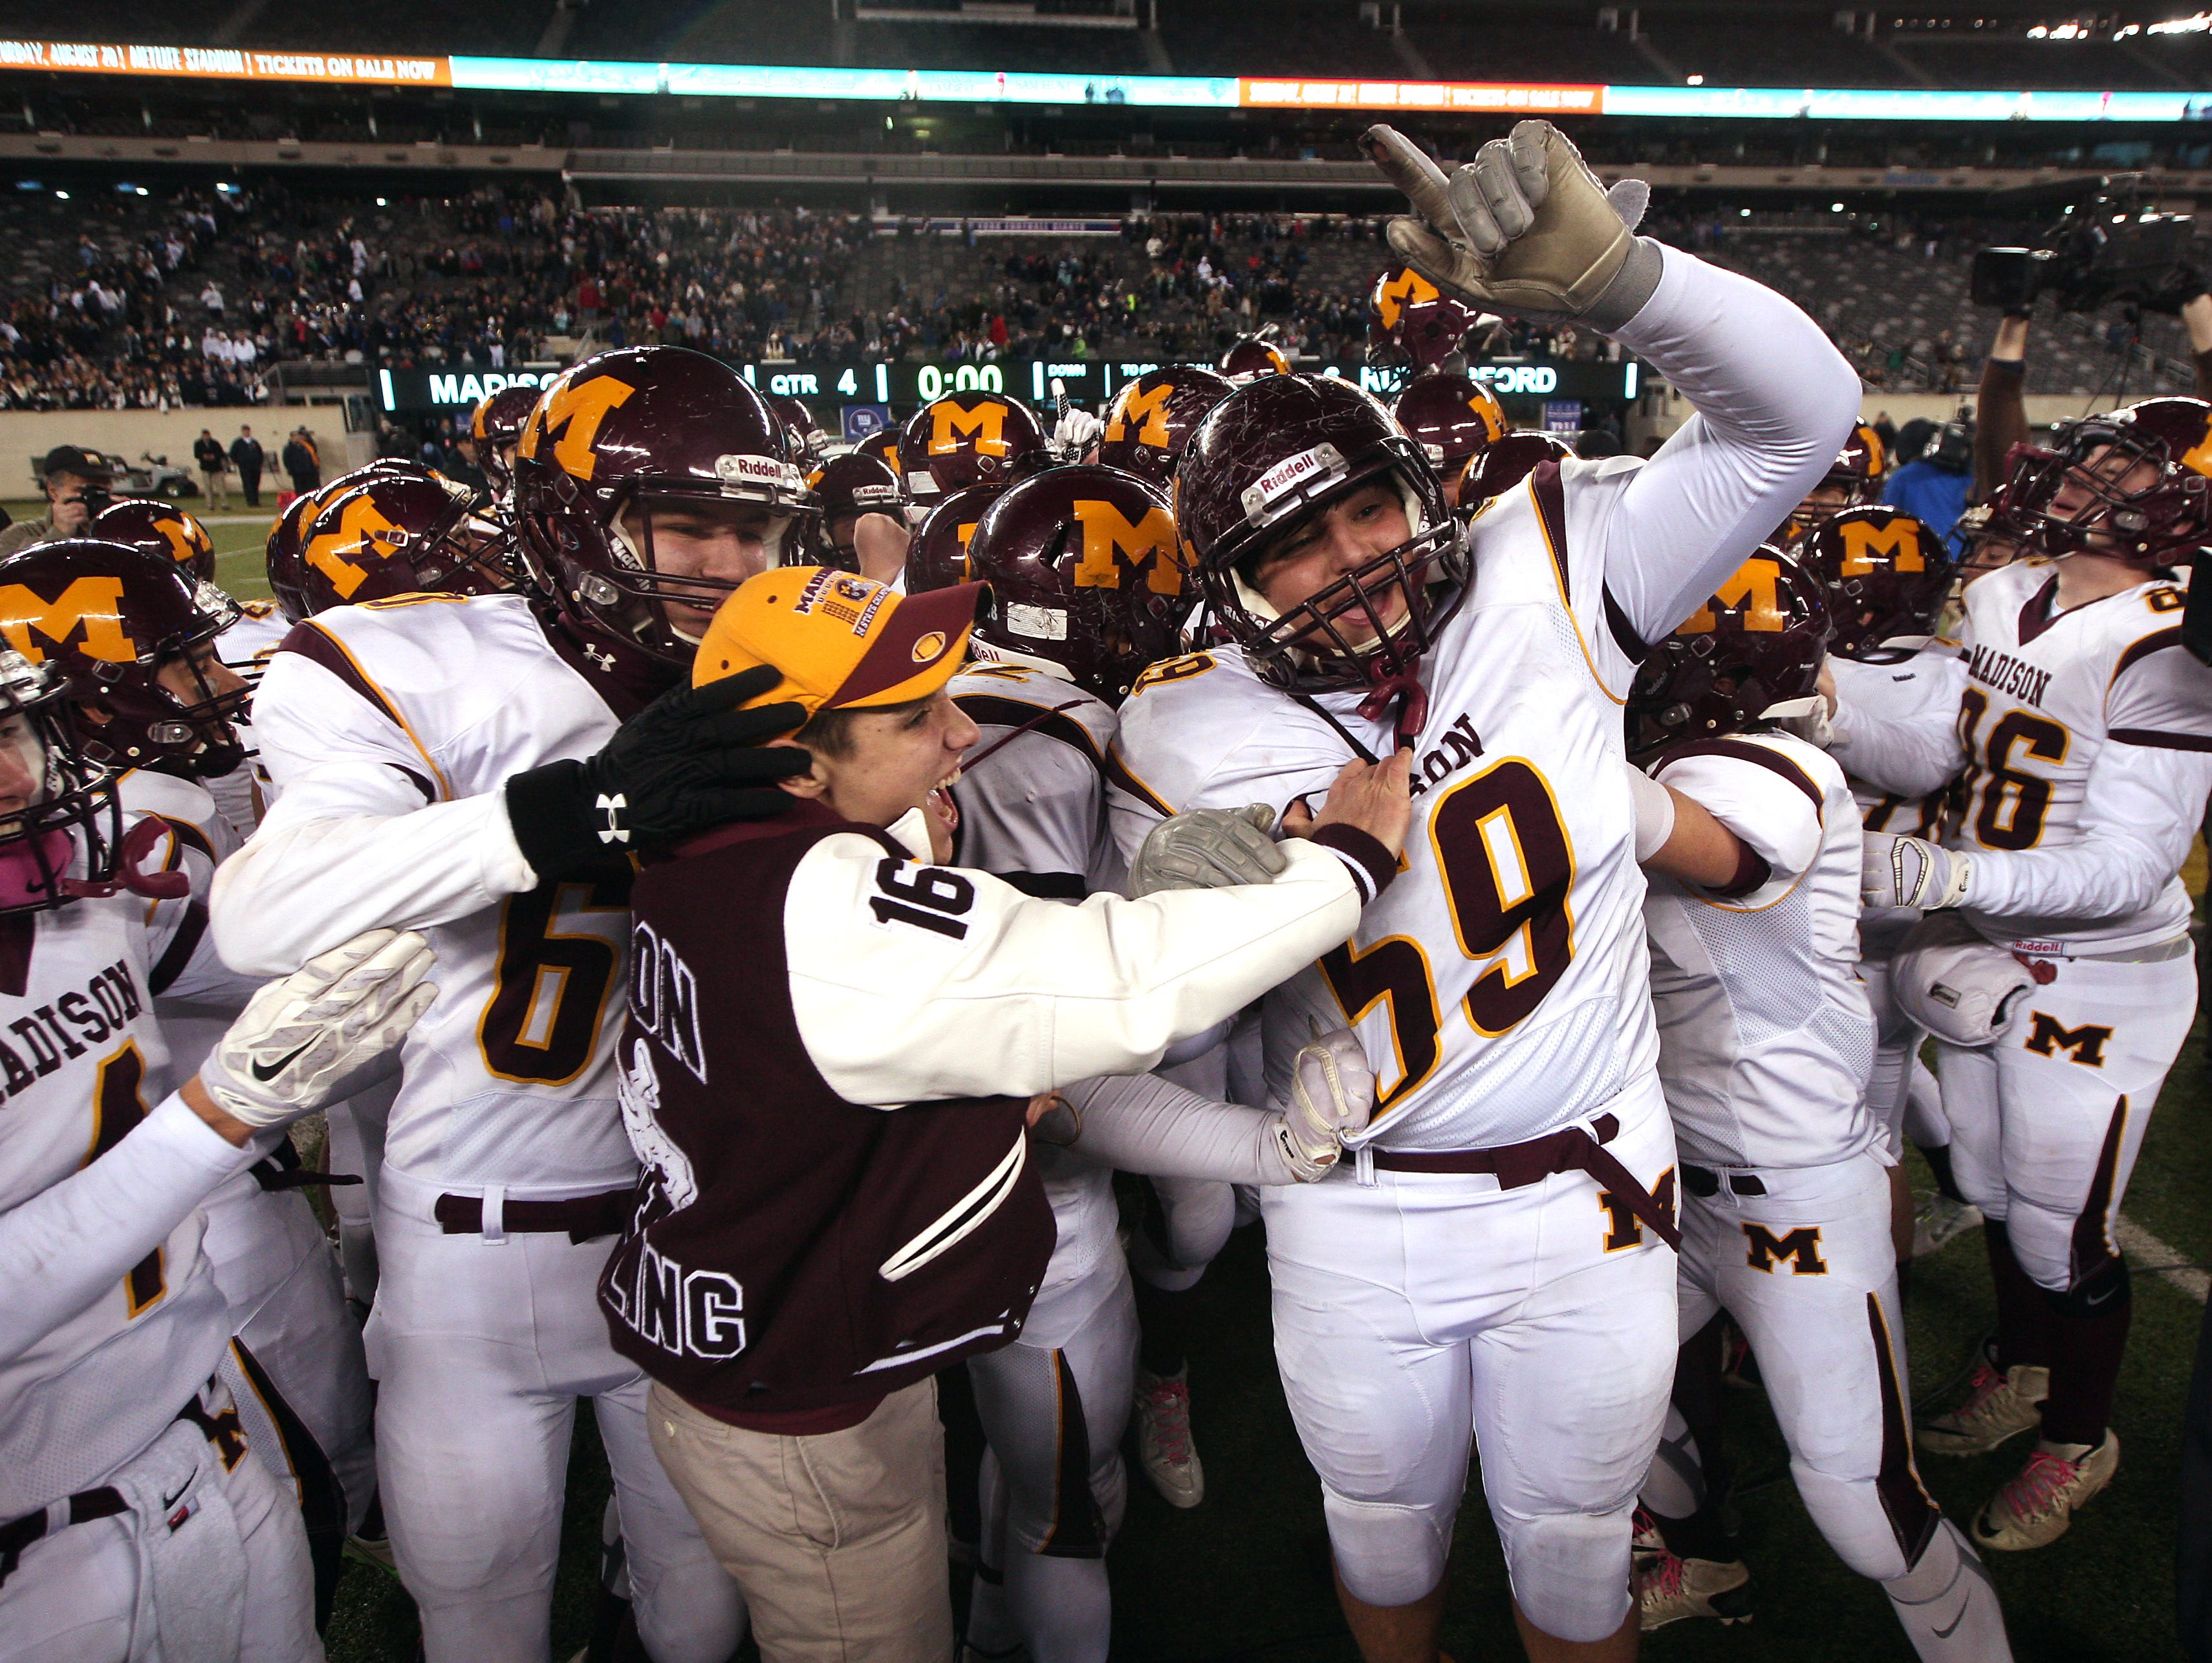 Madison's Yiakos Kostidakis (59) celebrates with his team after beating Rutherford in the North 2, Group 2 NJSIAA football Championship at MetLife Stadium. Madison won 27-6. December 3, 2015, East Rutherford, NJ.